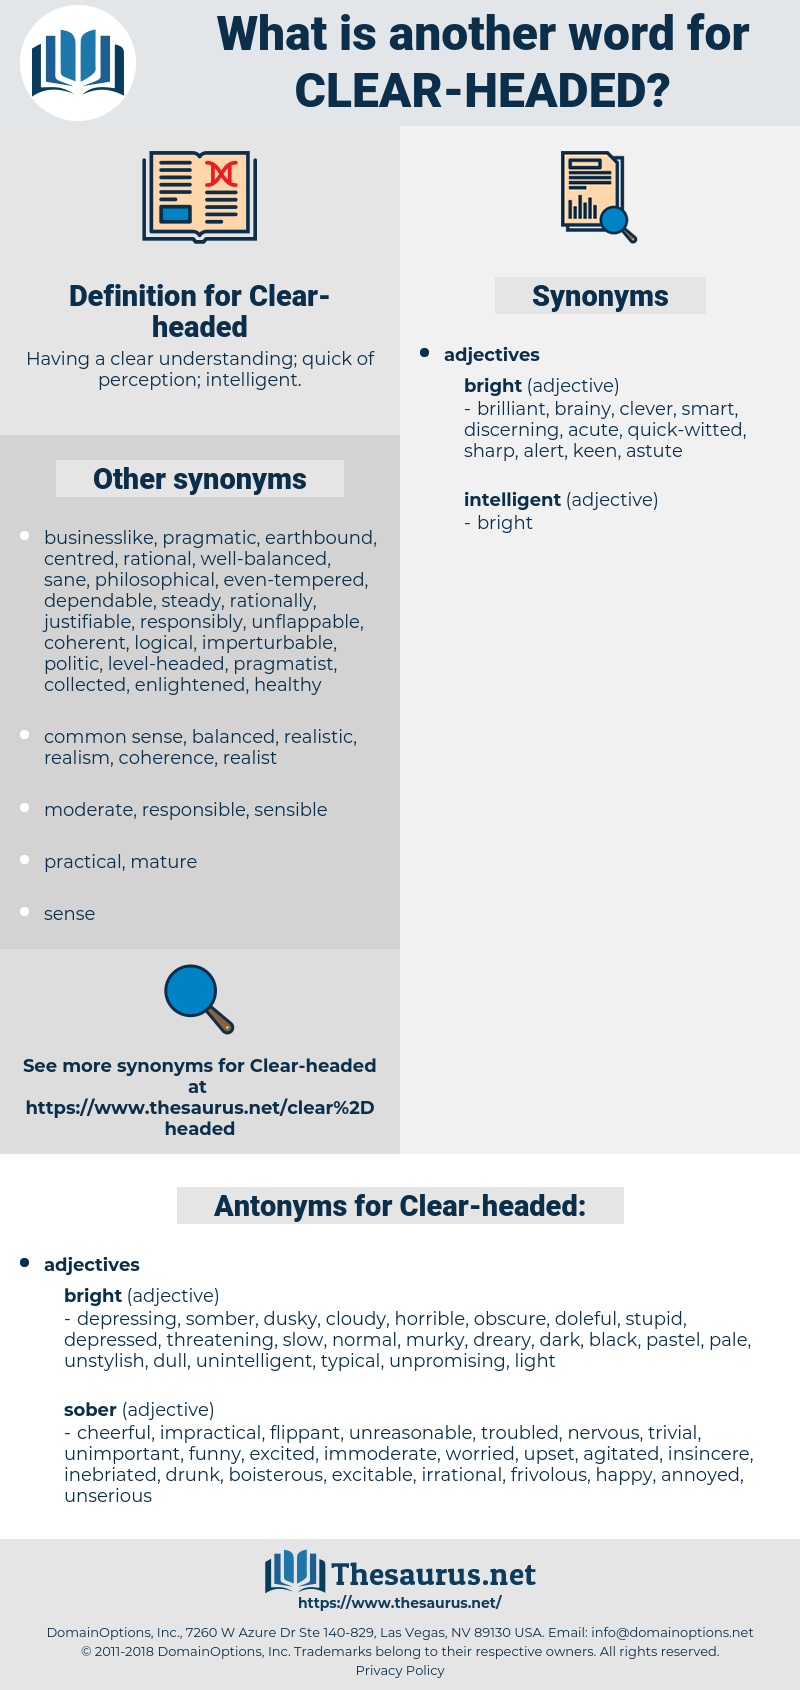 Clear-headed, synonym Clear-headed, another word for Clear-headed, words like Clear-headed, thesaurus Clear-headed